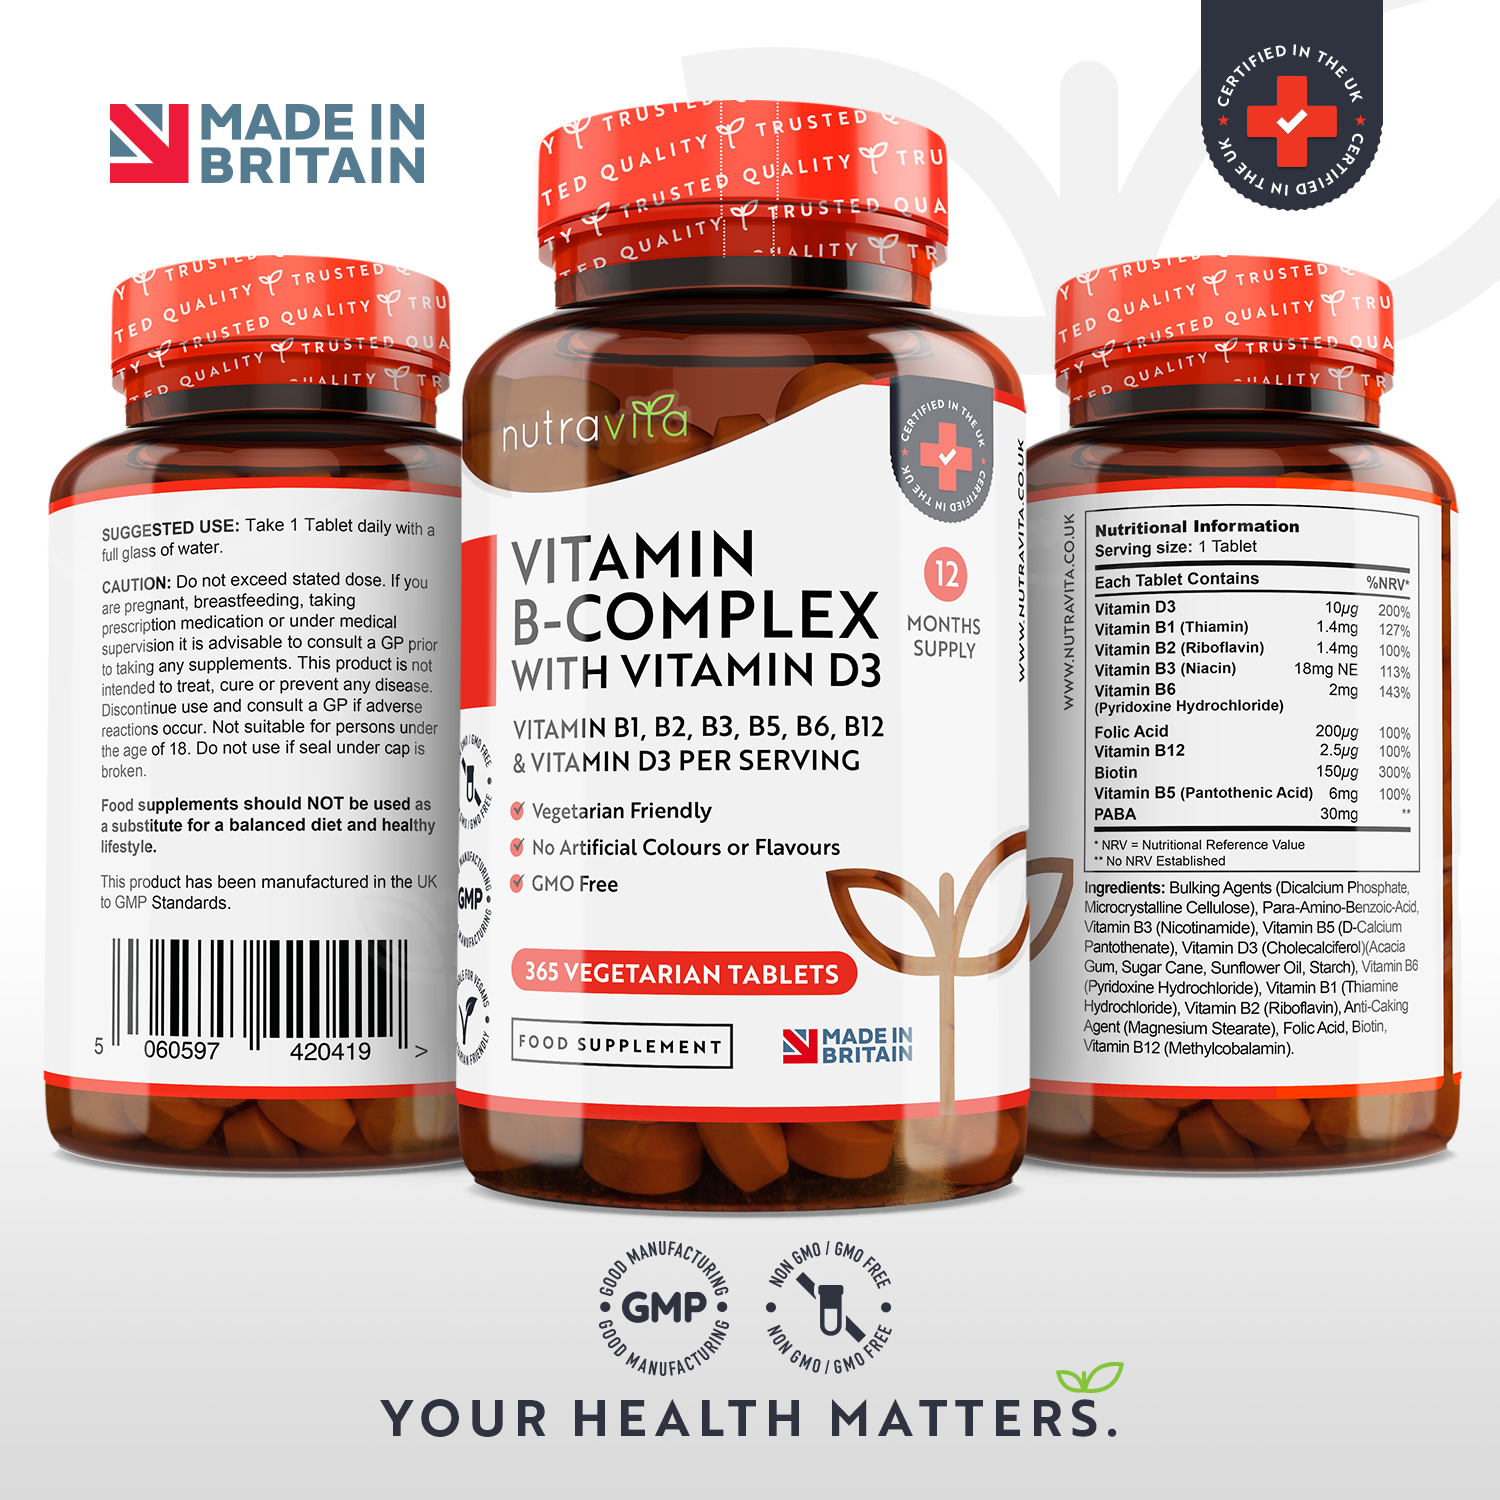 Vitamin B Complex (8xB's) enriched with Vitamin D3